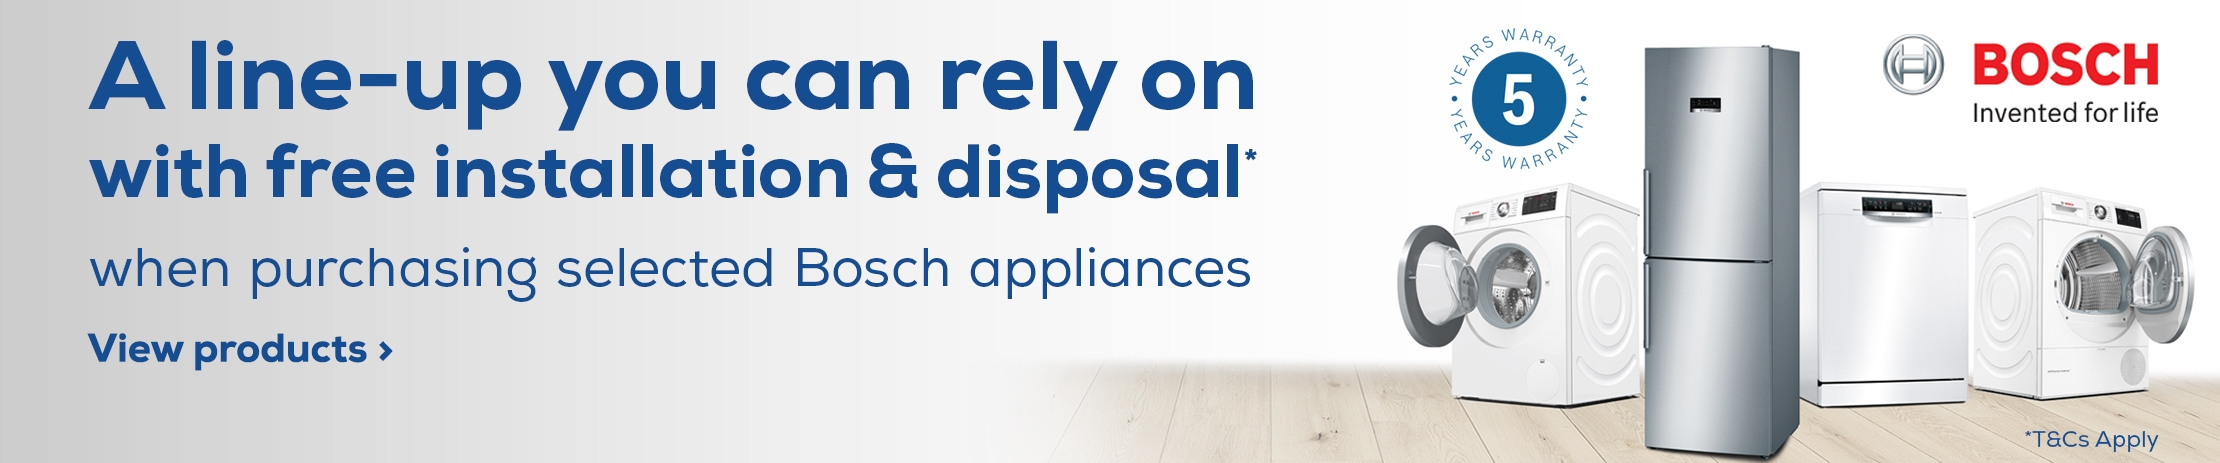 Bosch Free Install and Disposal Promotion